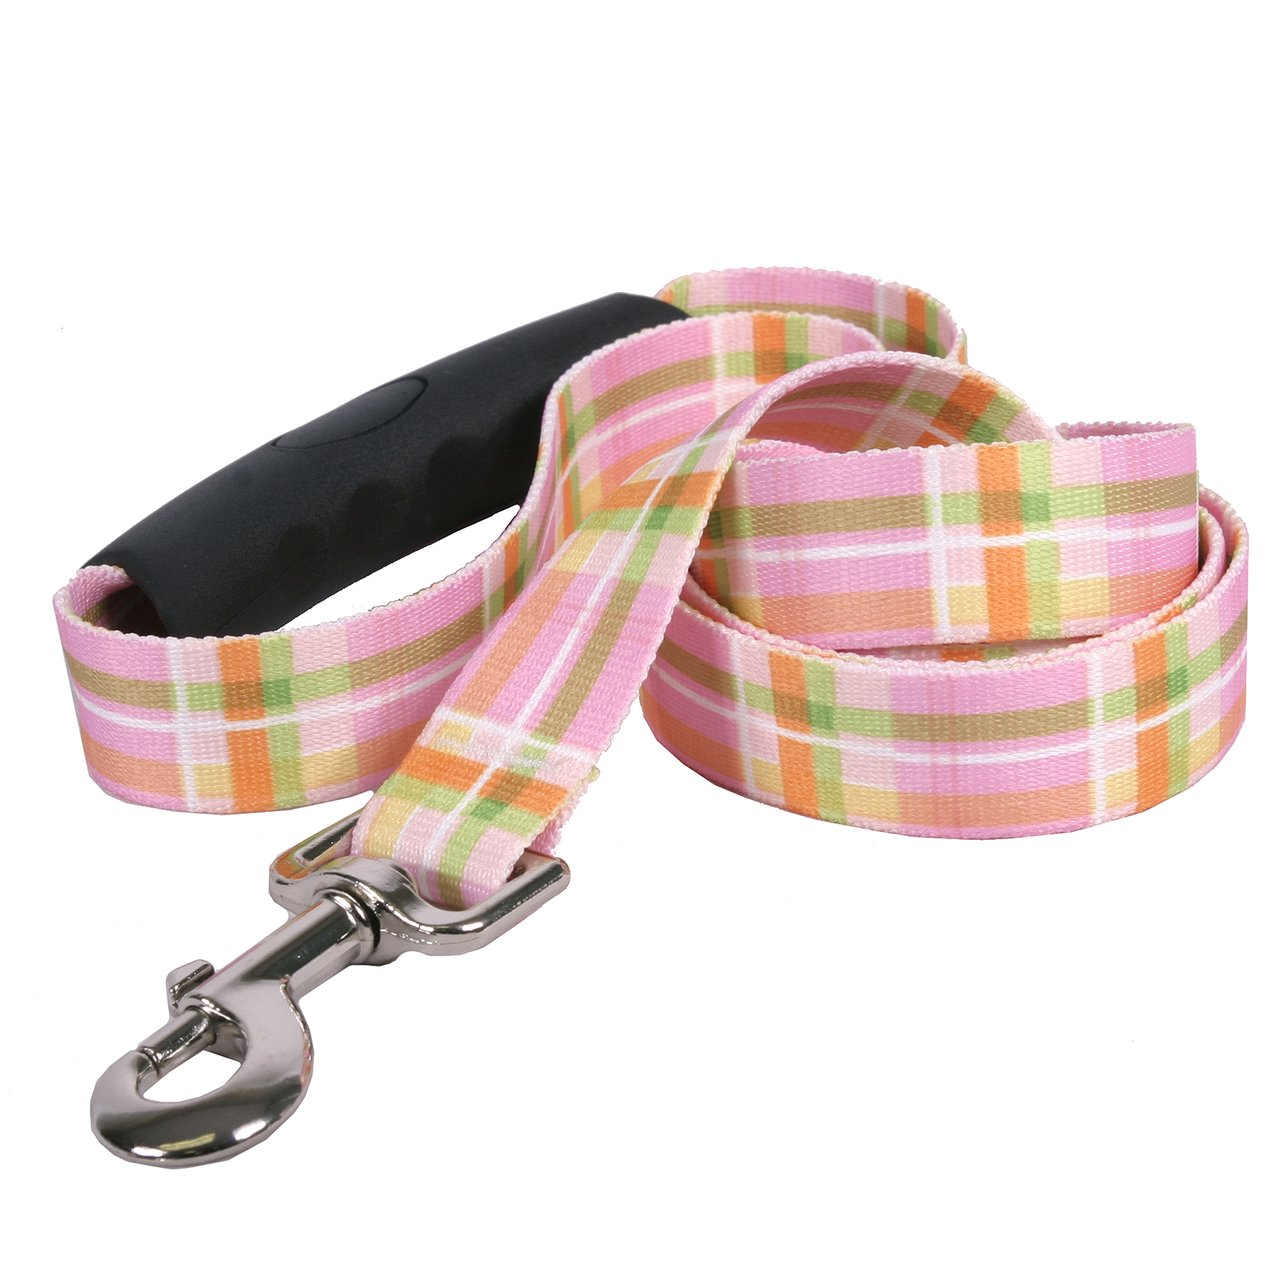 Yellow Dog Design Southern Dawg Madras Pink Premium Dog Leash with Comfort Grip Handle-Large-1'' and 5' (60'') Made in the USA by